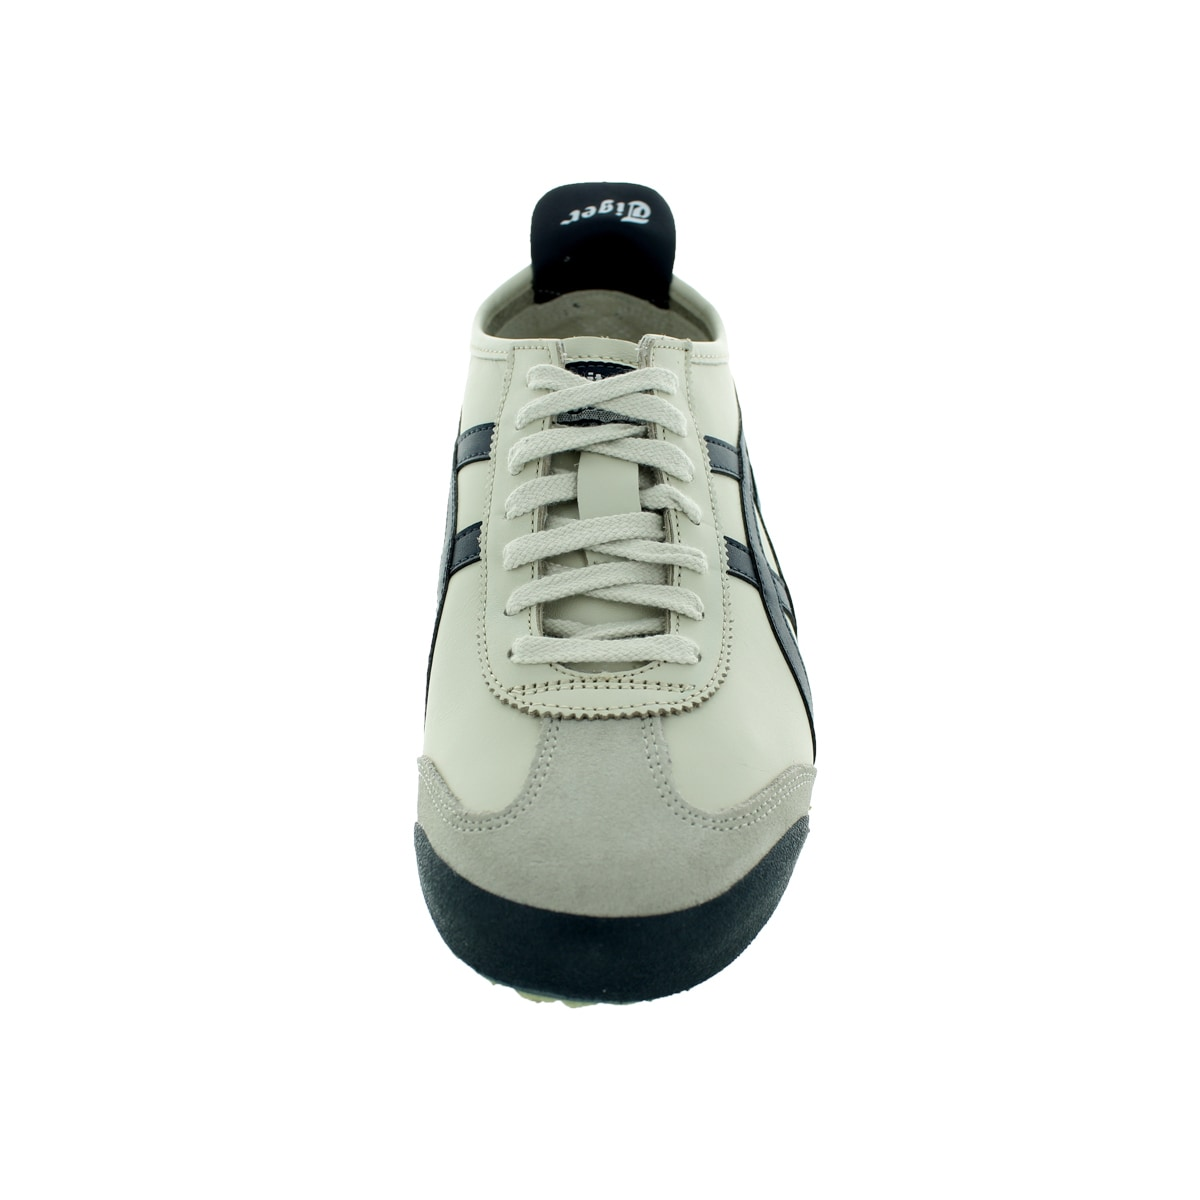 pick up 24db9 f90ad Onitsuka Tiger Unisex Mexico 66 Birch/India Ink/Latte Casual Shoe